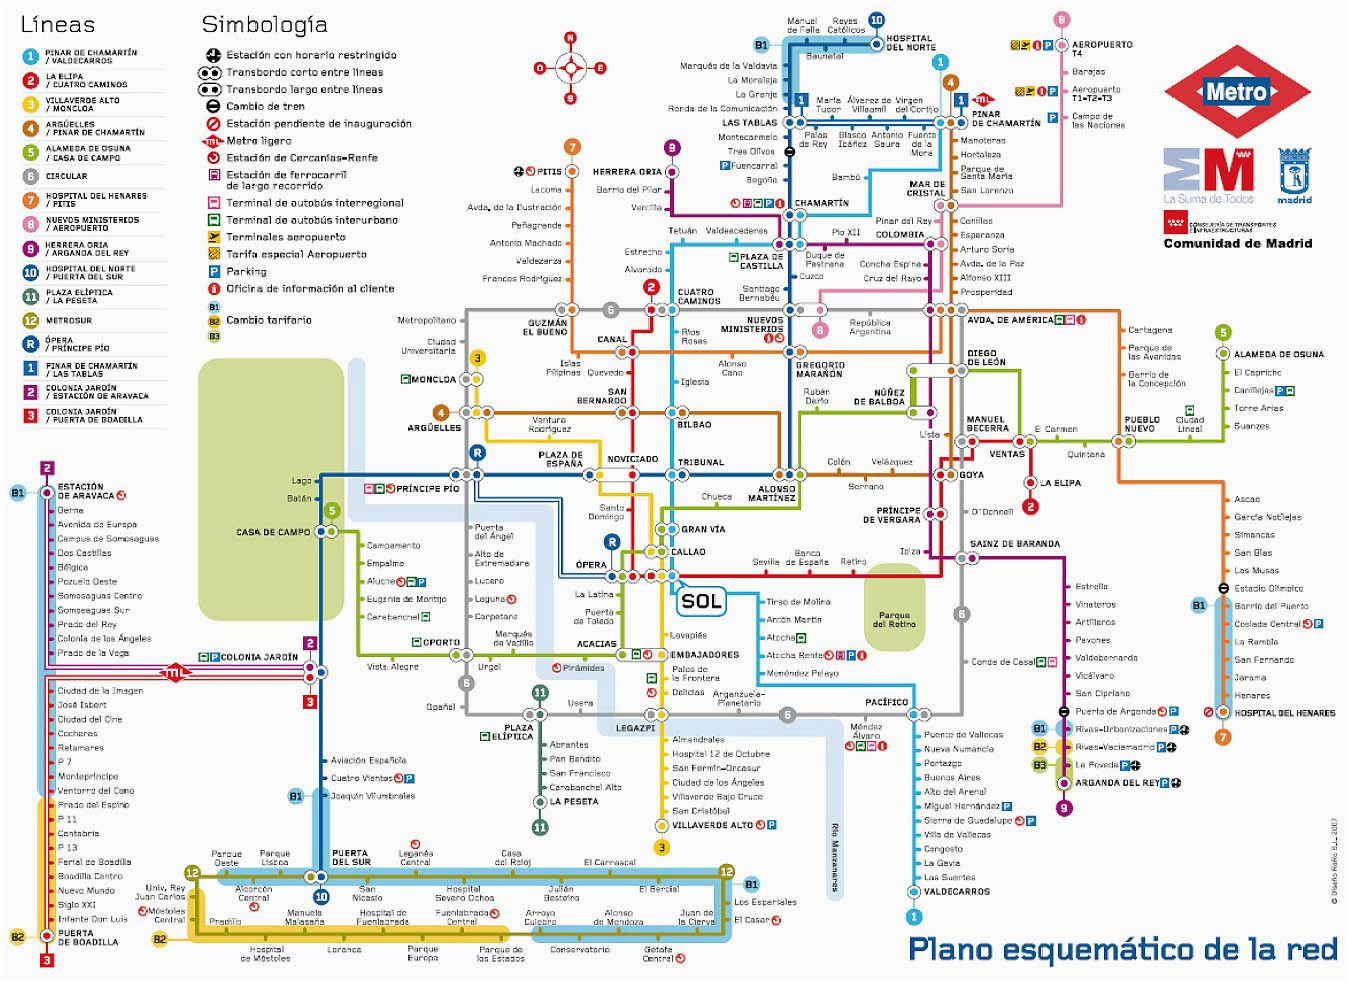 madrid metro map madrid spain mappery m a p d d d n d d d d n n n